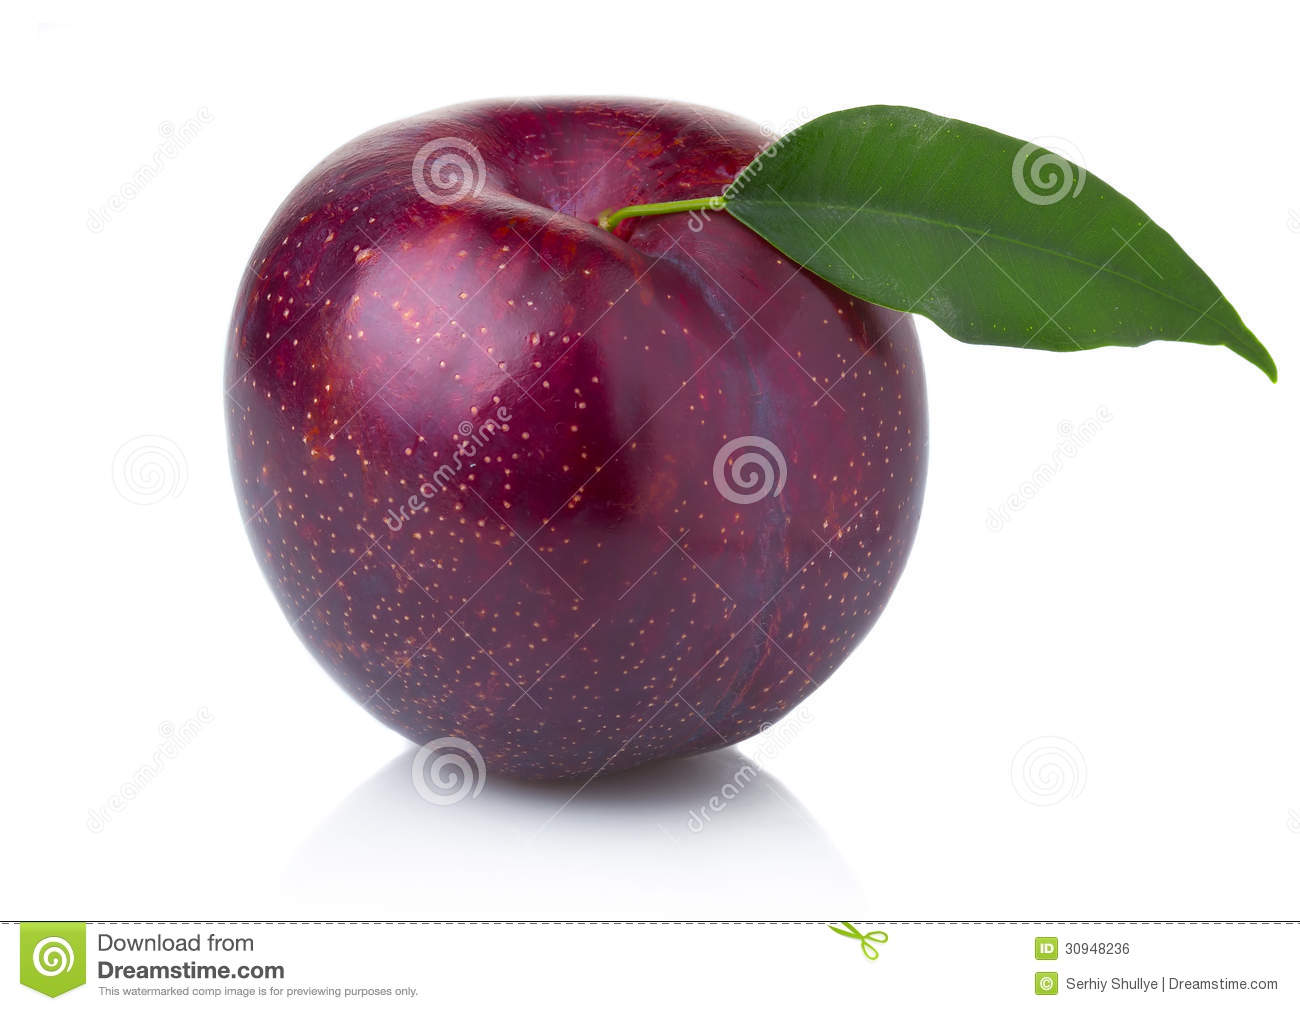 how to tell if a plum is ripe